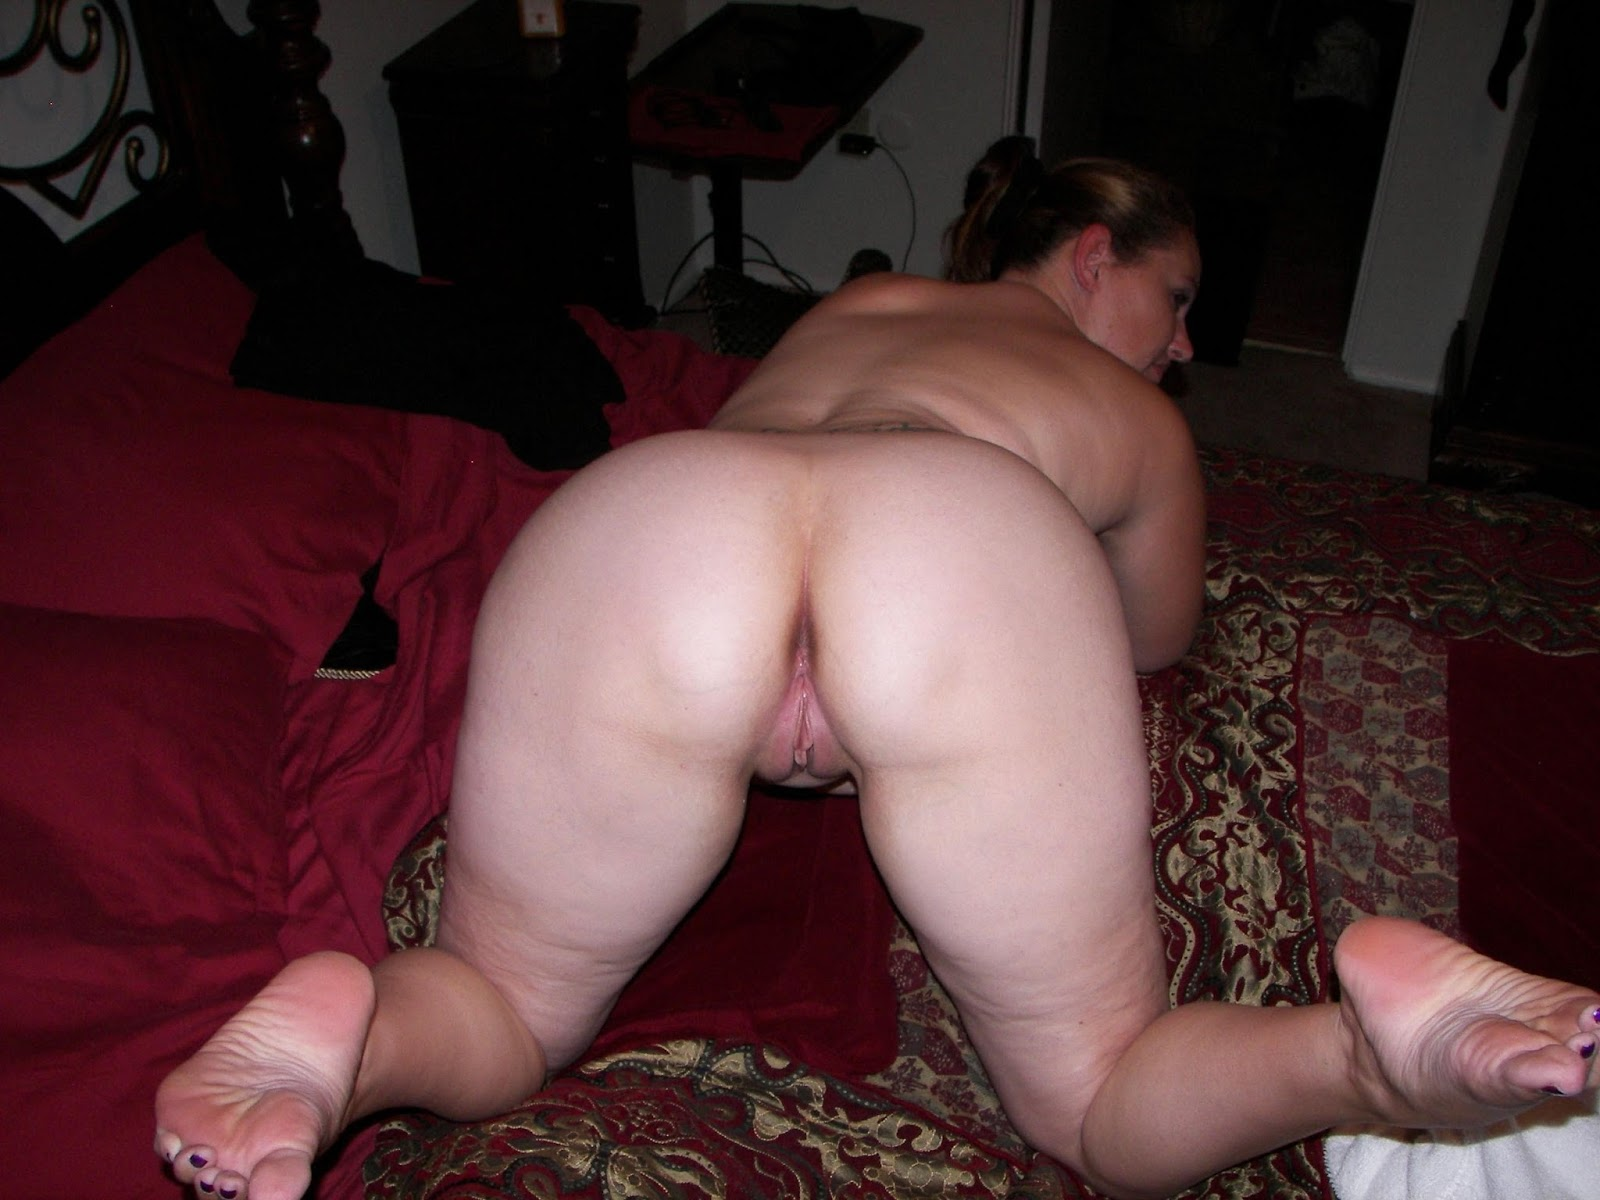 Ass chubby fat free mature picture thick woman-7216